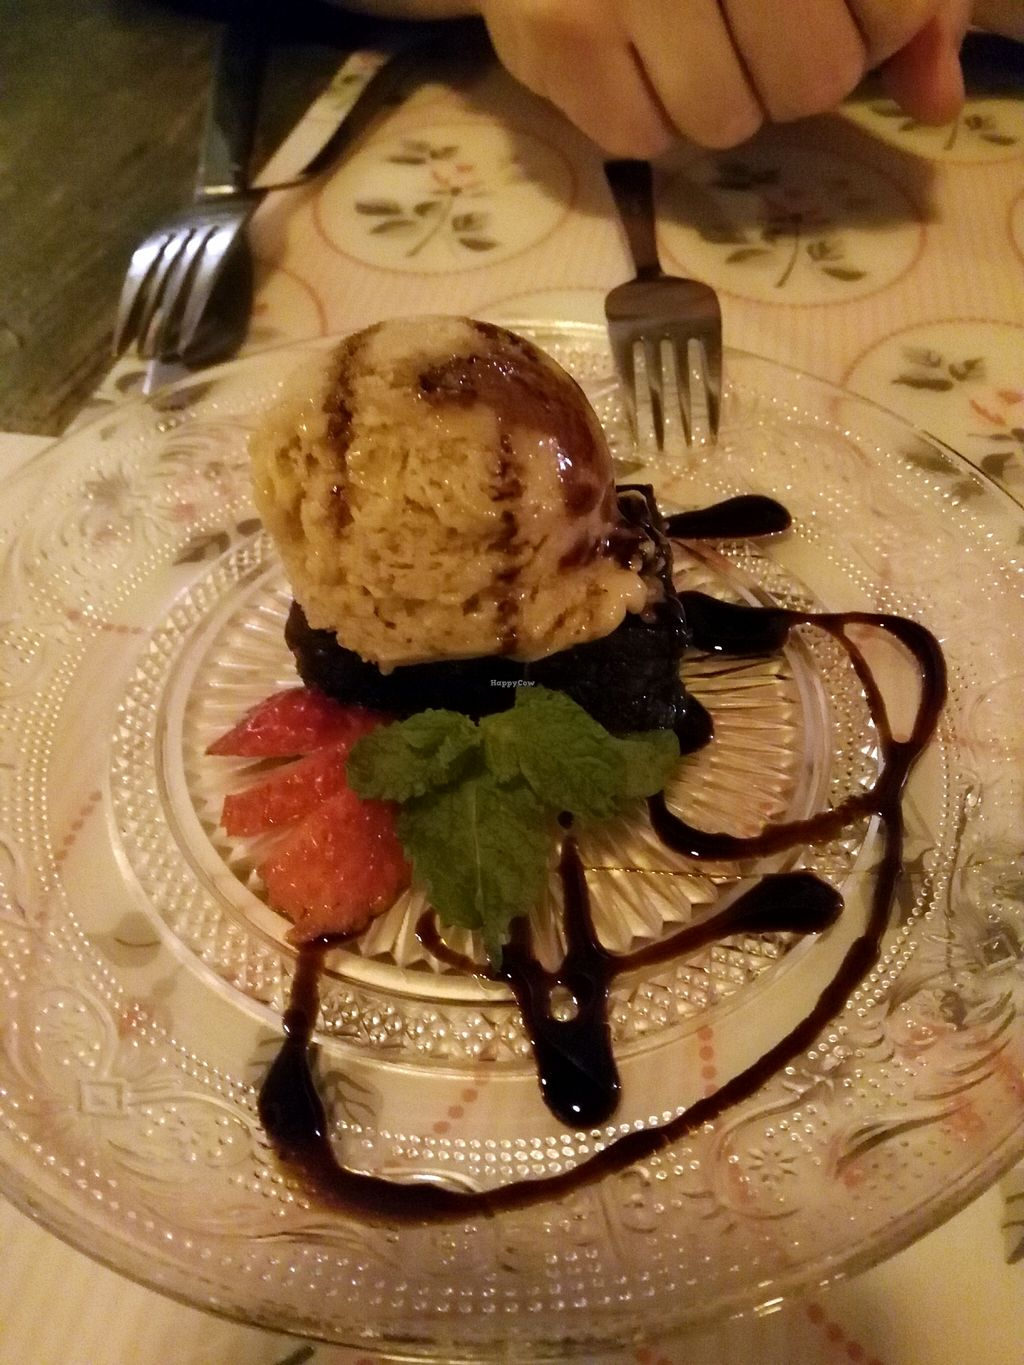 """Photo of CLOSED: Out of Time People  by <a href=""""/members/profile/Meibluemoon"""">Meibluemoon</a> <br/>Small piece of brownie with banana ice cream. We didn't like it :'( Almost 6 euros <br/> October 3, 2015  - <a href='/contact/abuse/image/11759/119982'>Report</a>"""